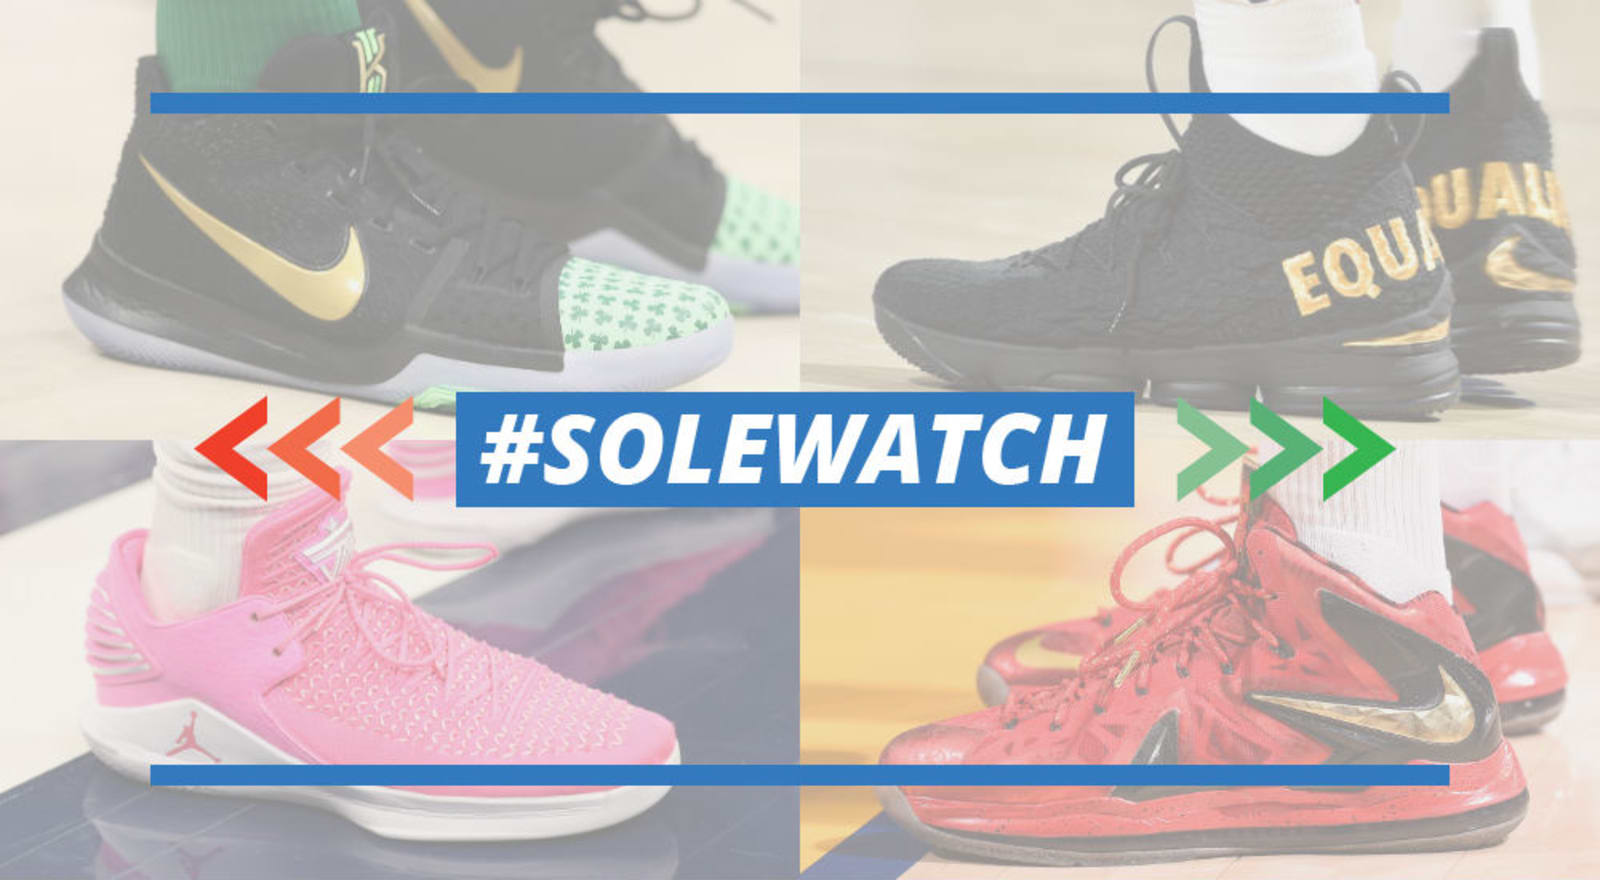 52a1dd17caa NBA #SoleWatch Power Rankings October 22, 2017: Nick Young - NBA ...